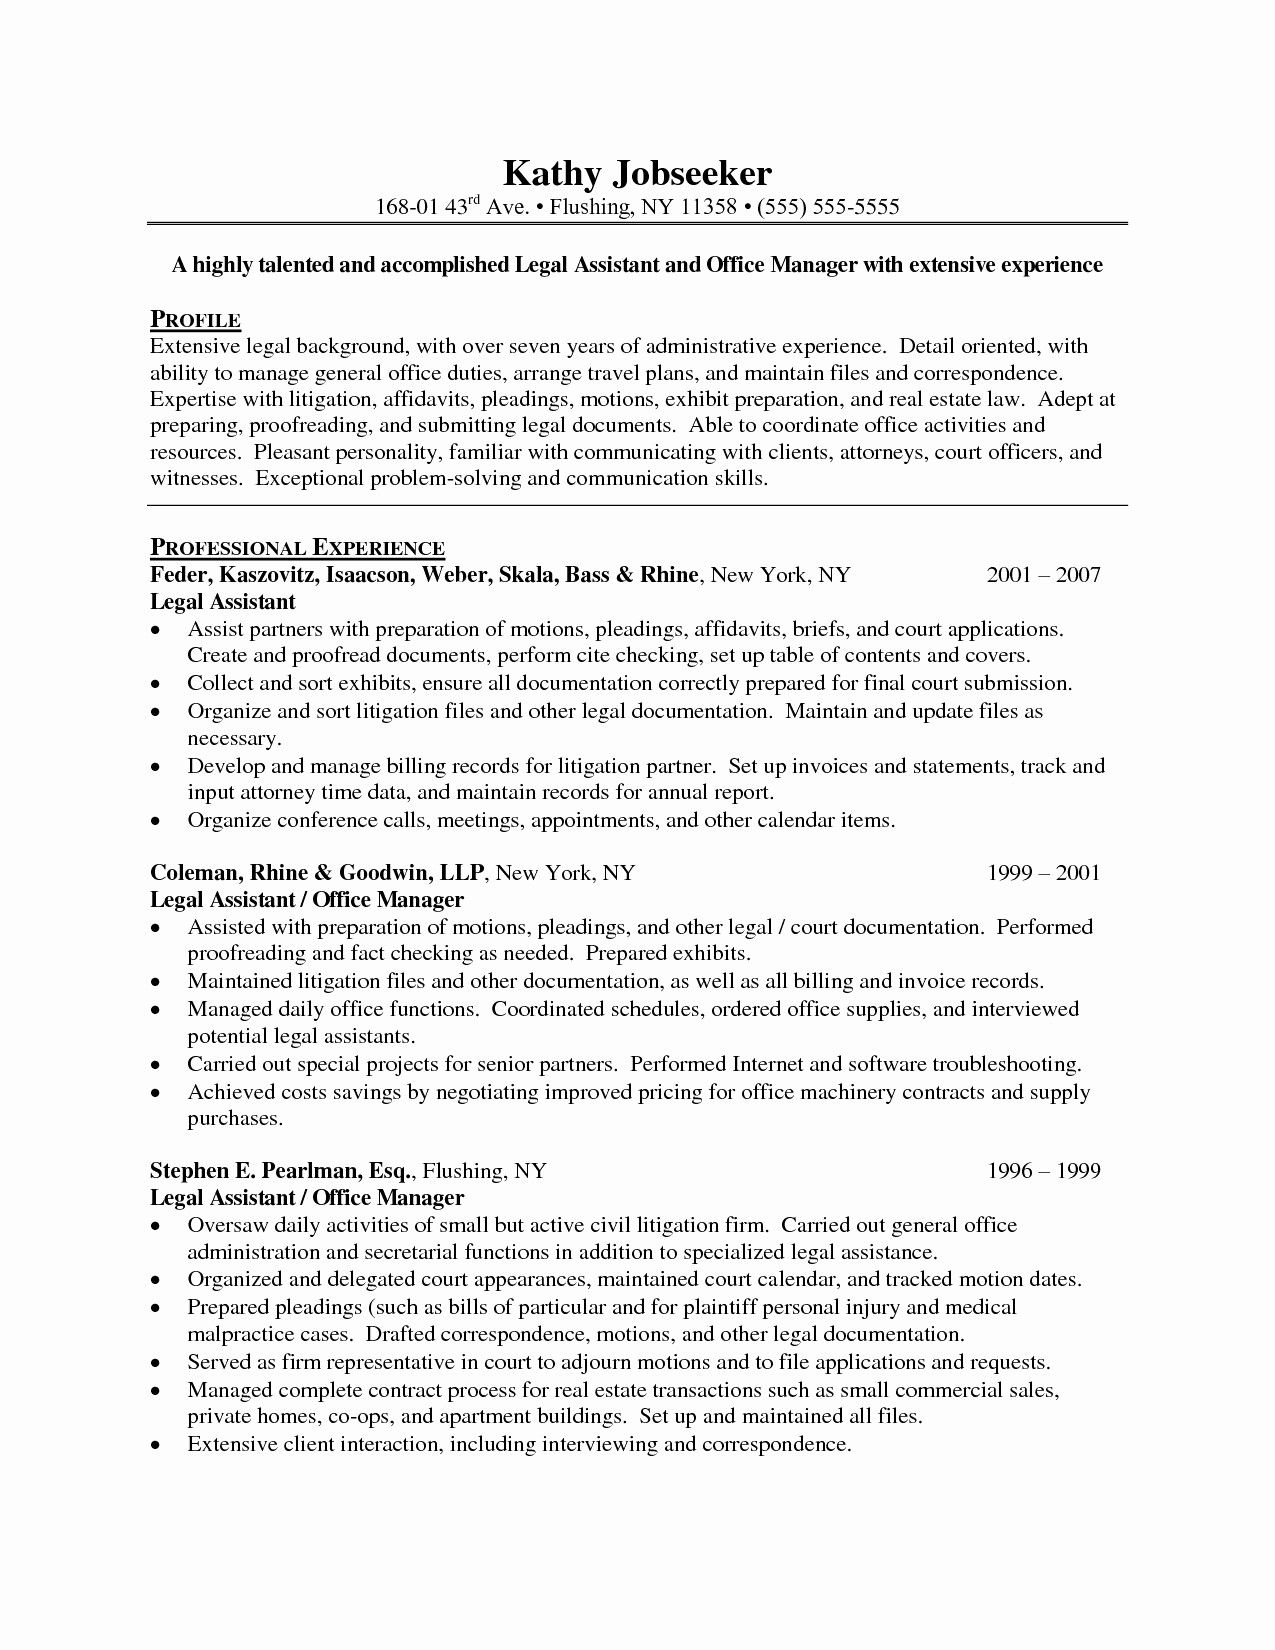 paralegal cover letter good objective for resume examples showroom assistant microsoft Resume Showroom Assistant Resume